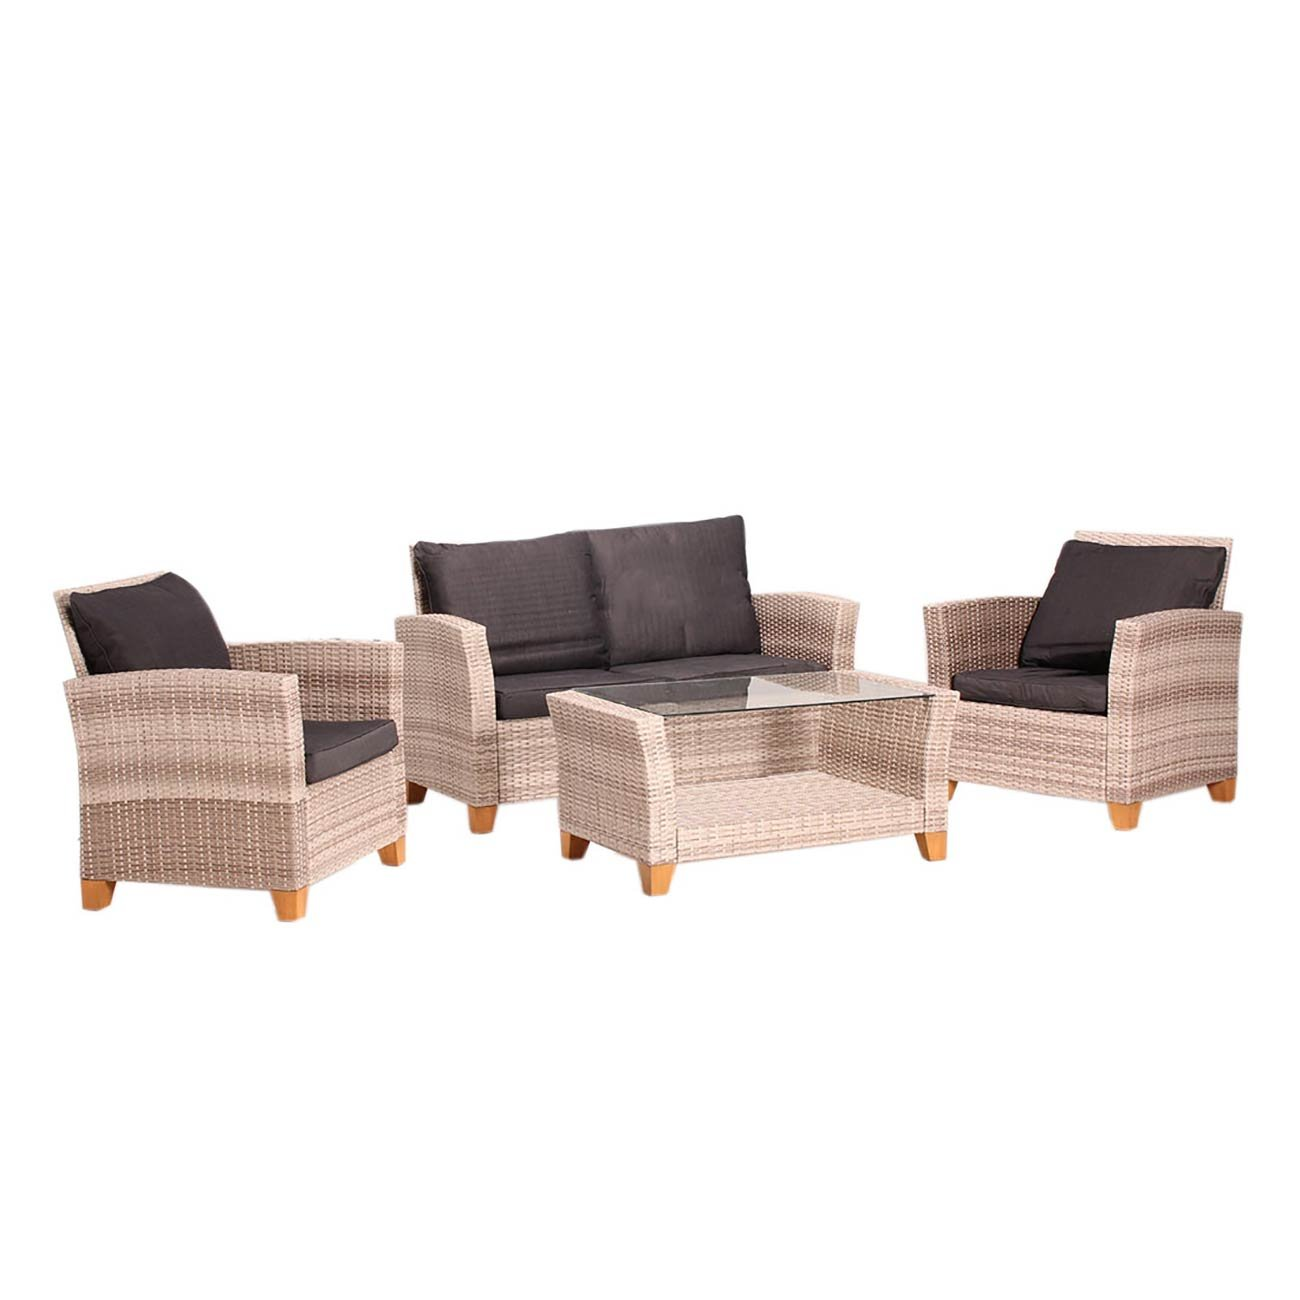 loungem bel outdoor outliv adelaide 4 tlg gartenlounge set polyrattan akazie beige braun. Black Bedroom Furniture Sets. Home Design Ideas